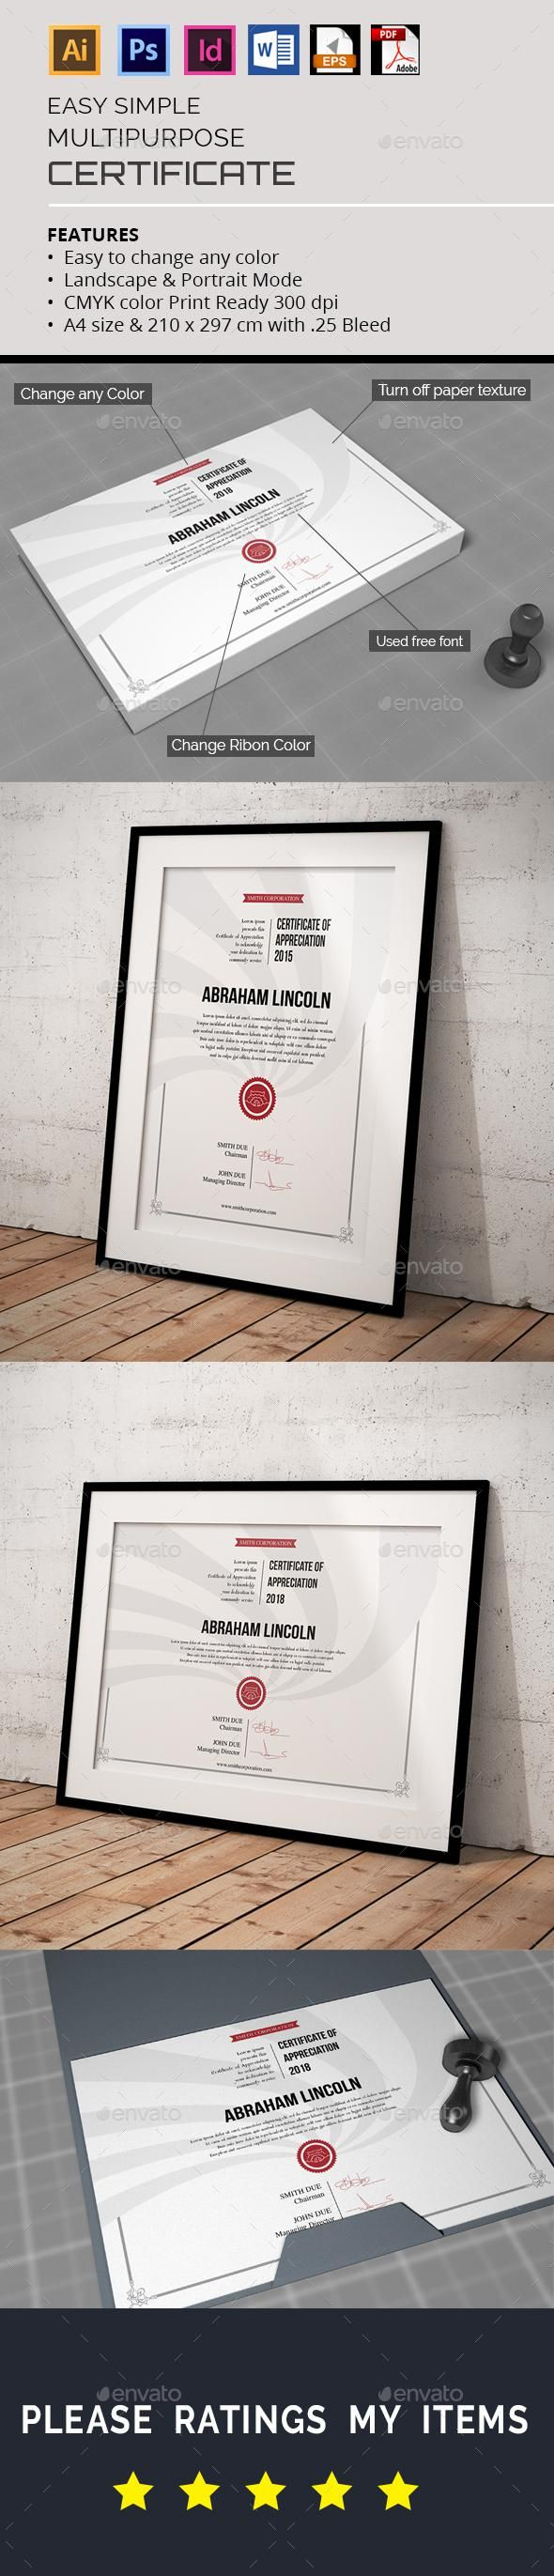 graphicriver certificate simple multipurpose stationery templates